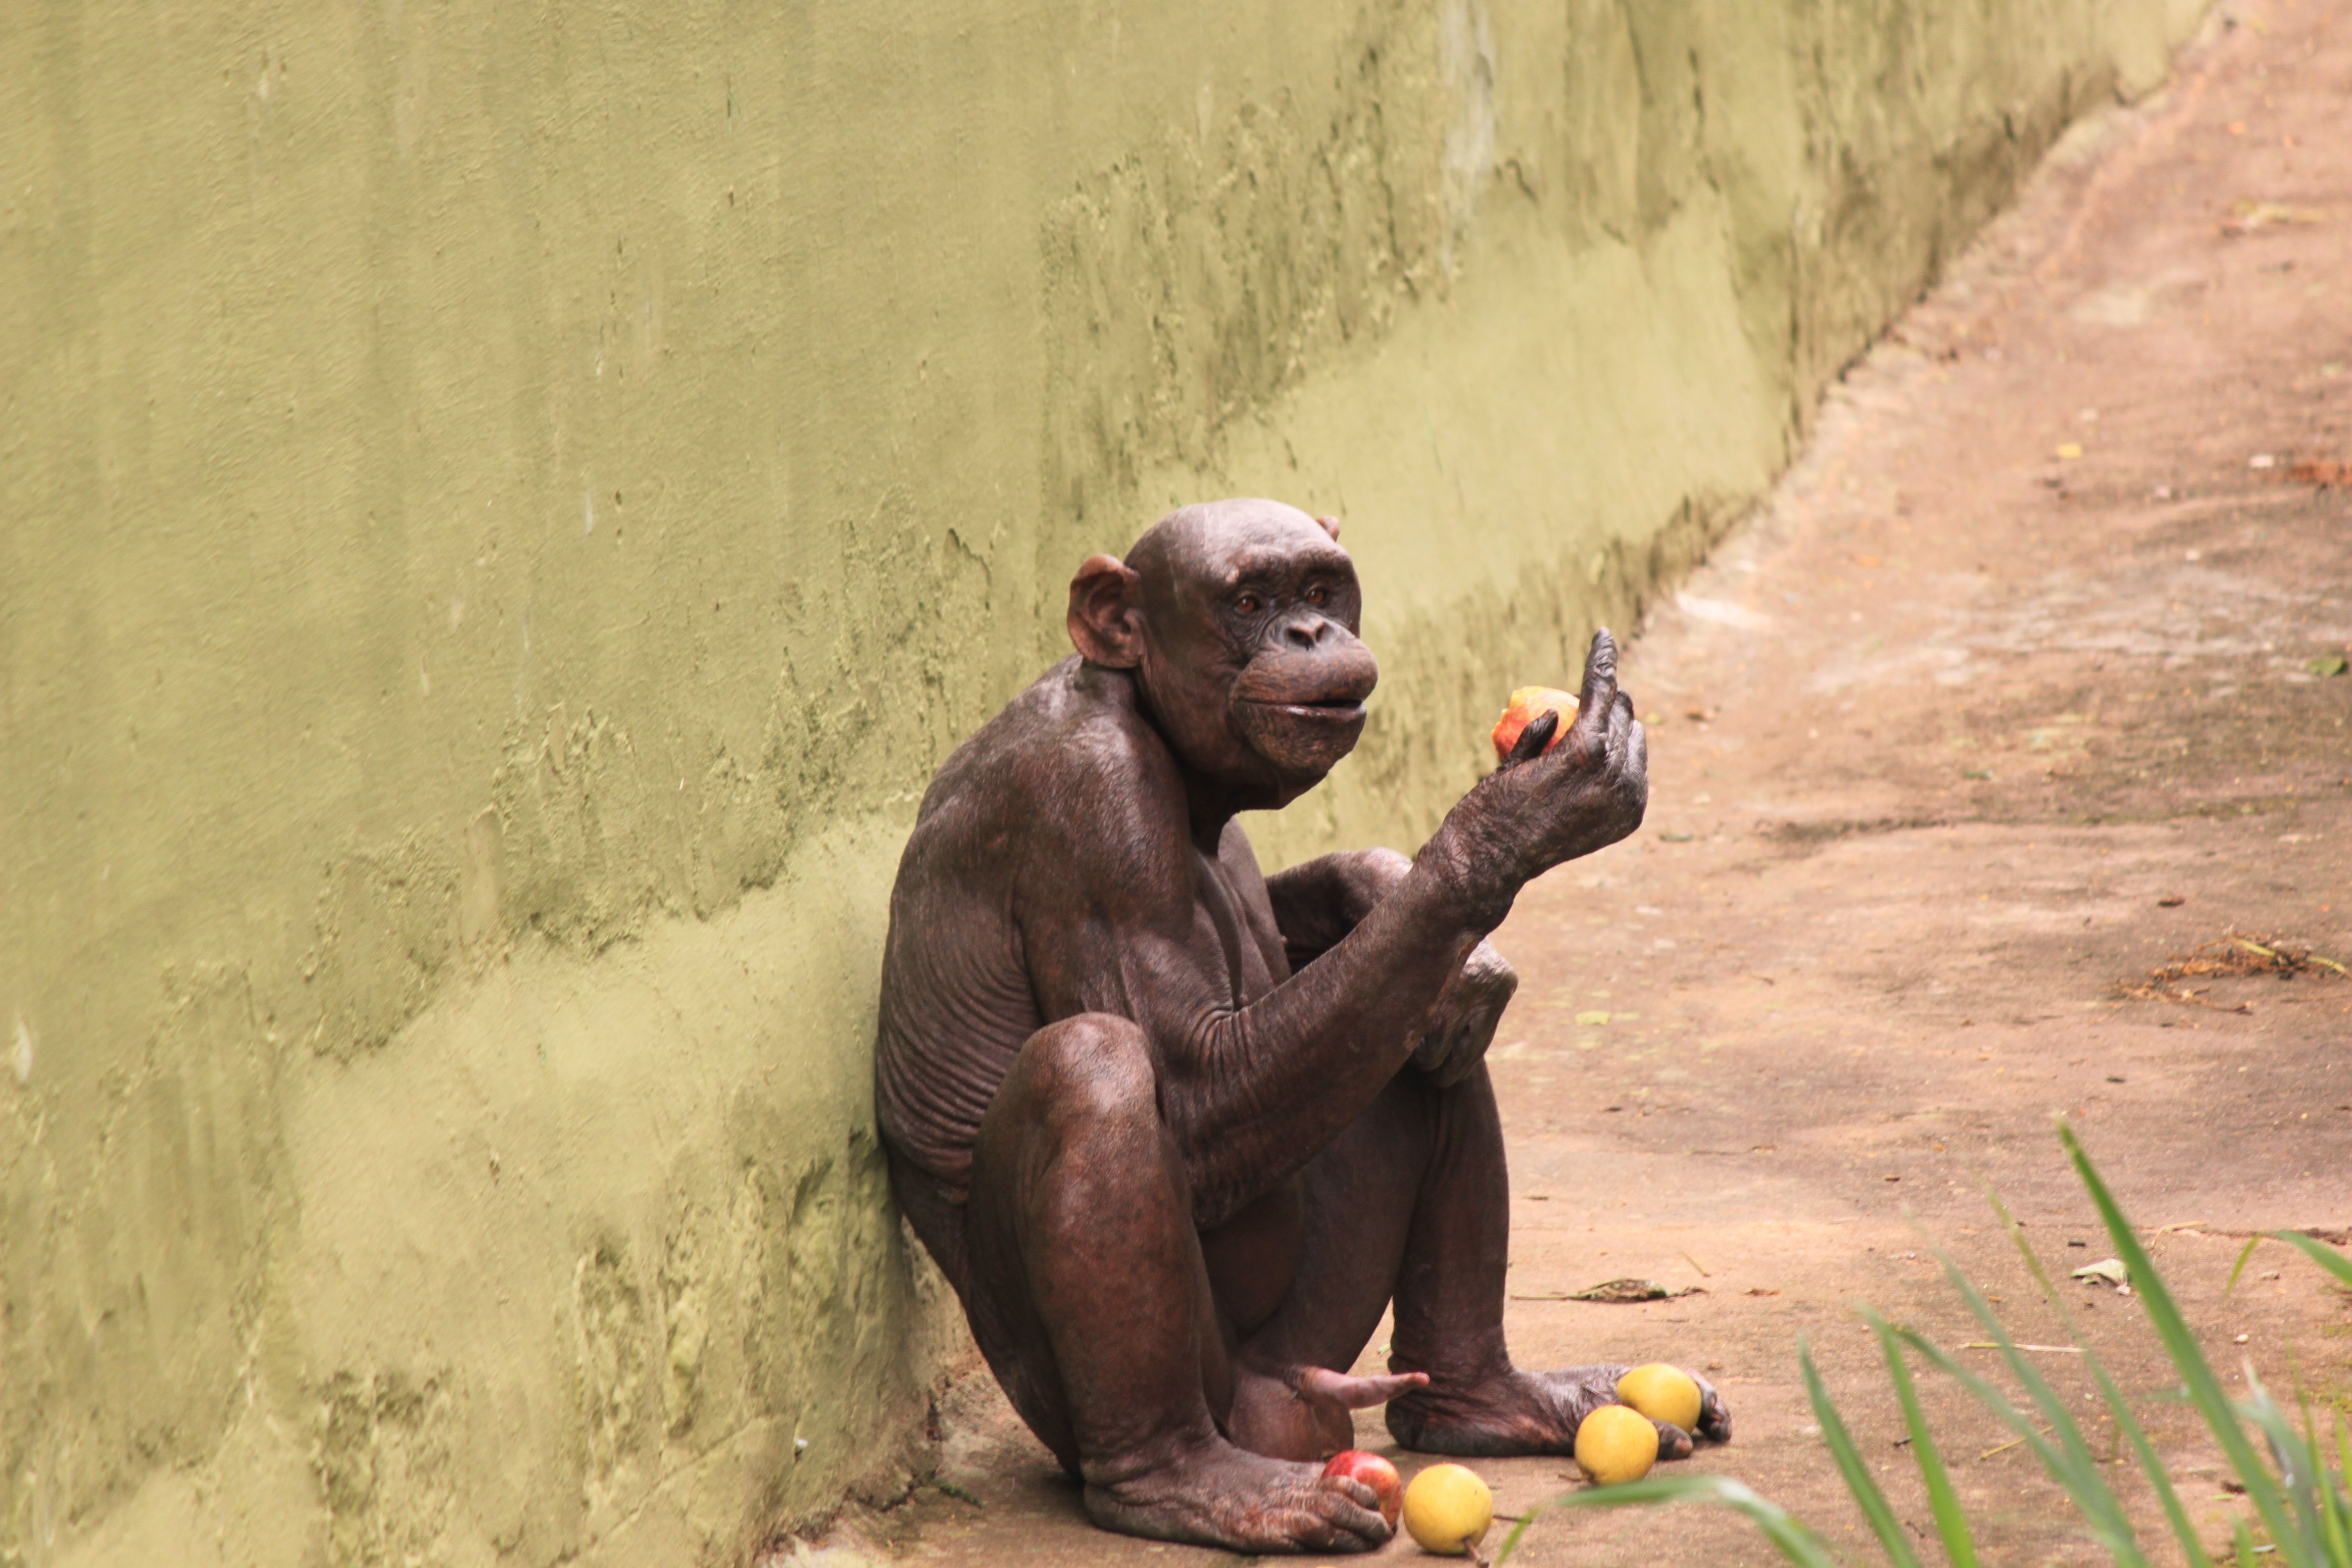 Chimp Named Guru Suffering From Aloepacia No Hair Looks So Much Like A Human Evolution Theory Is True For Sure Chimp Hair Loss Conditions Mysore Zoo